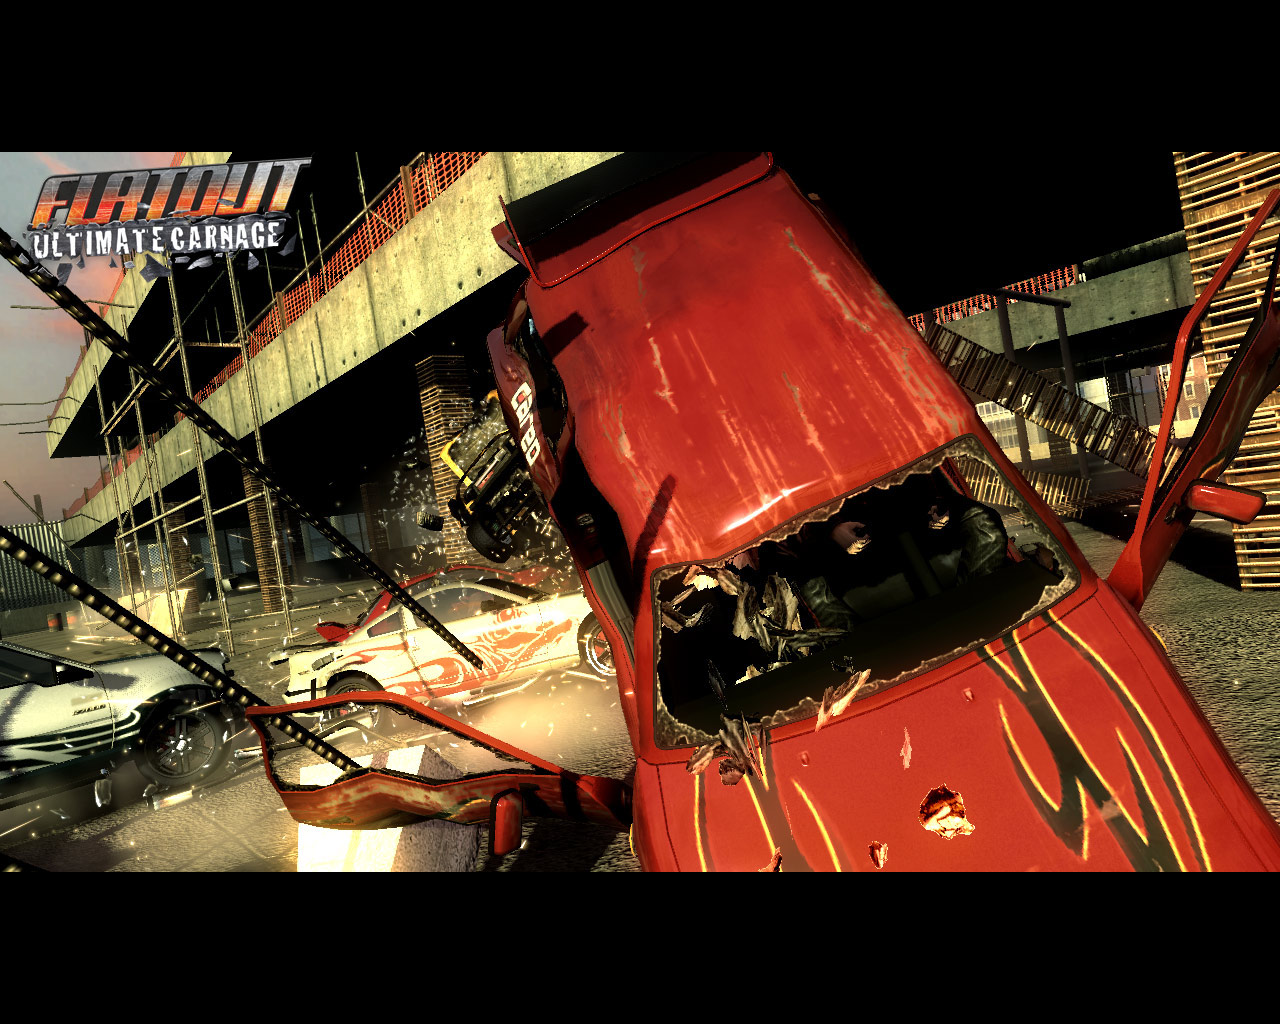 Car Crash  FlatOut Ultimate Carnage Wallpaper Gallery   Best 1280x1024